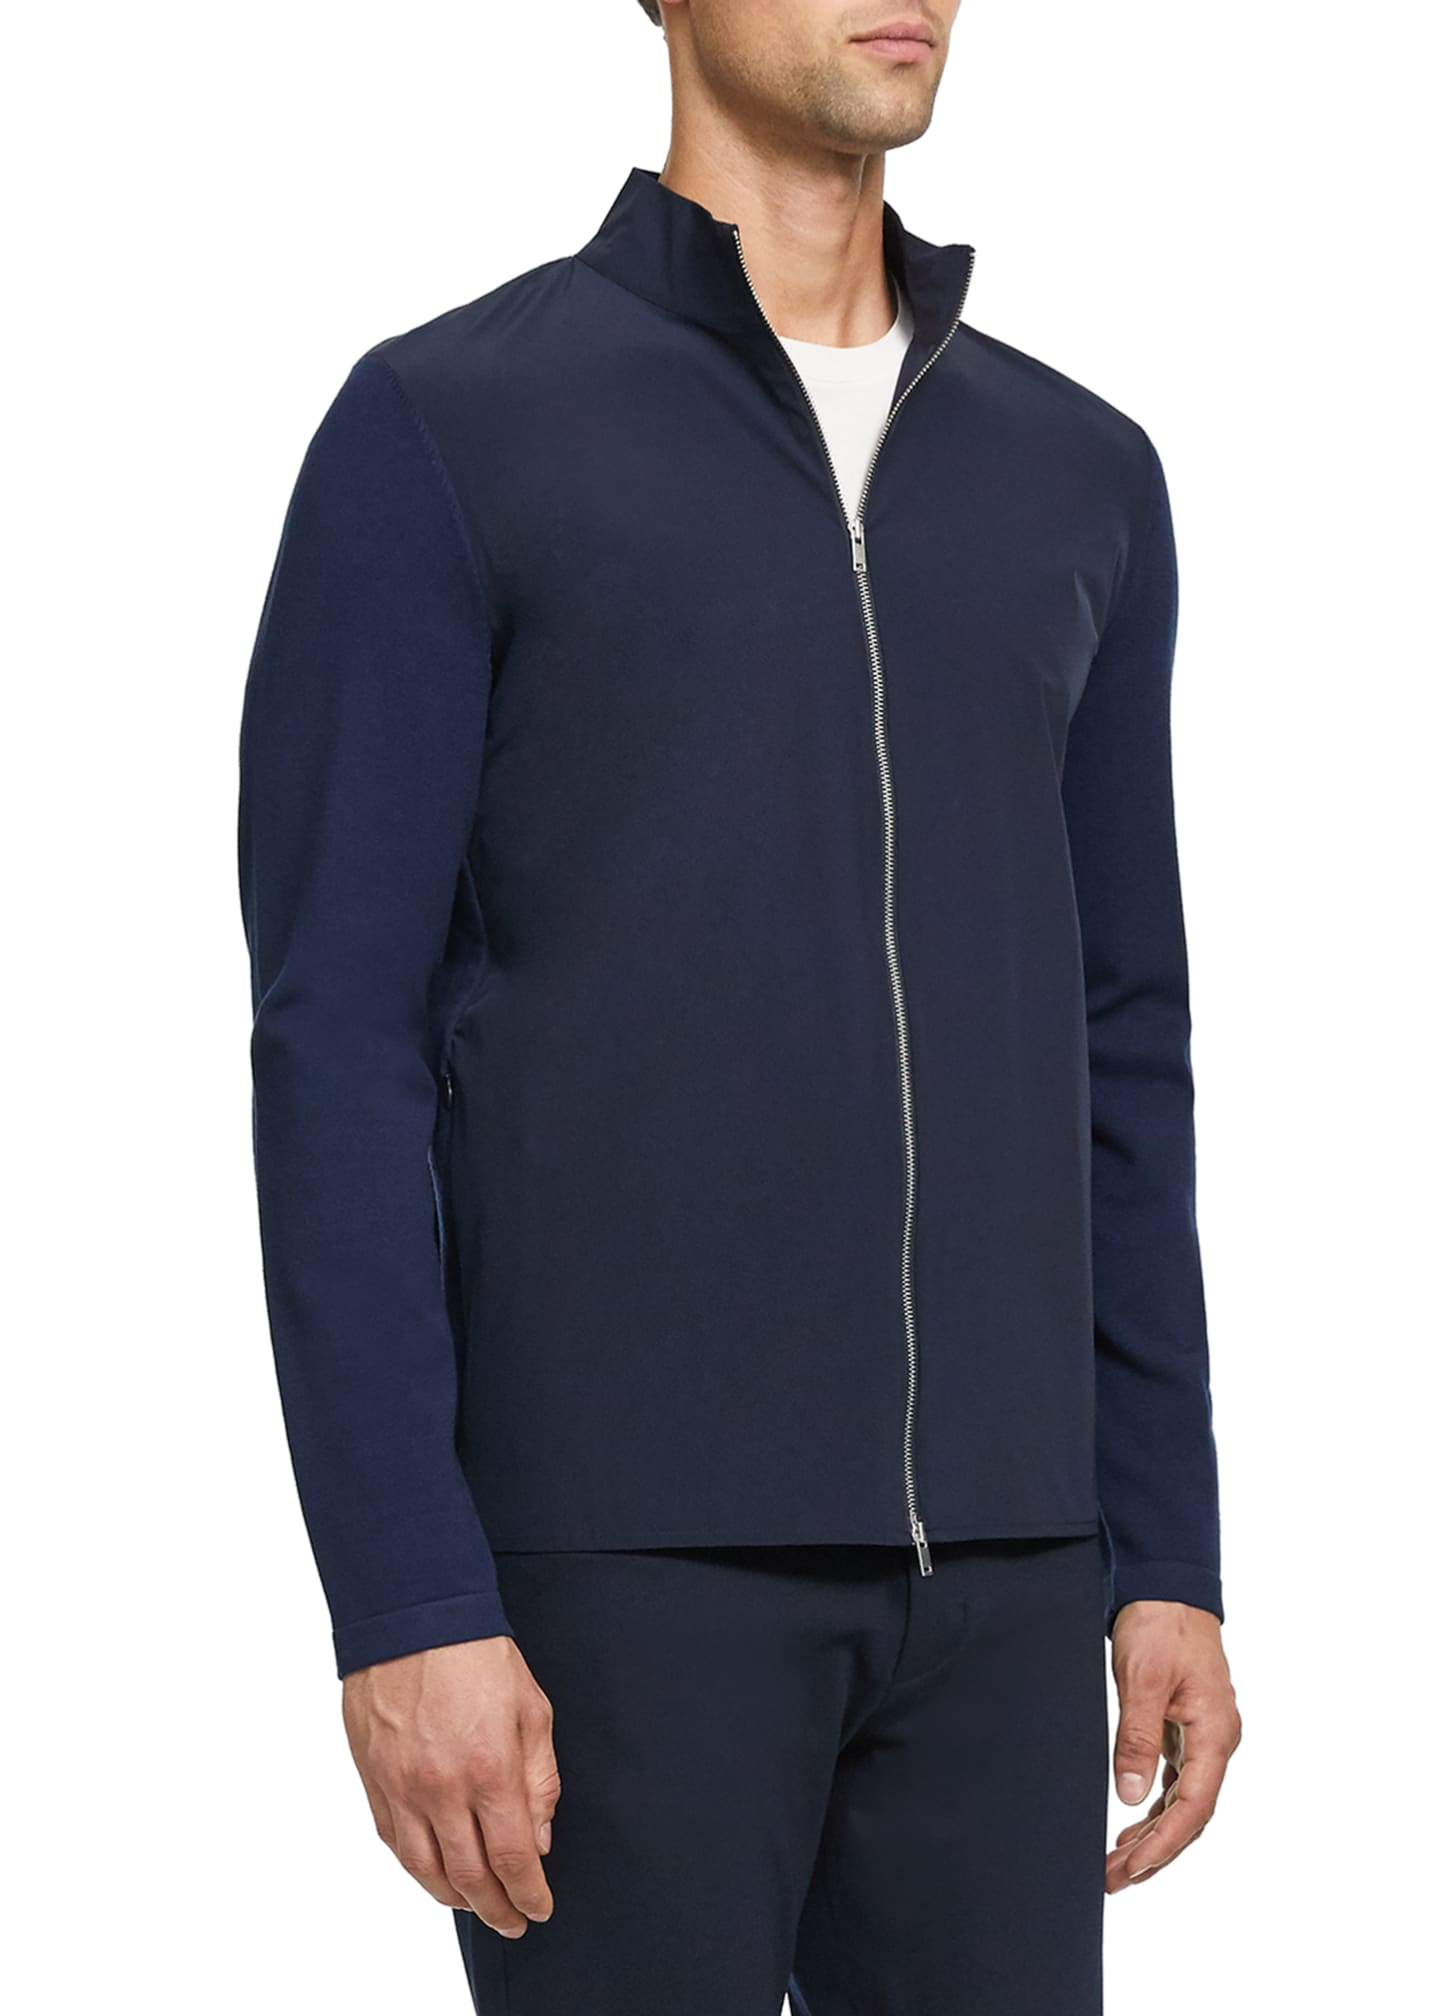 Image 2 of 3: Men's Bellvil Fine Bilen Sweater Jacket